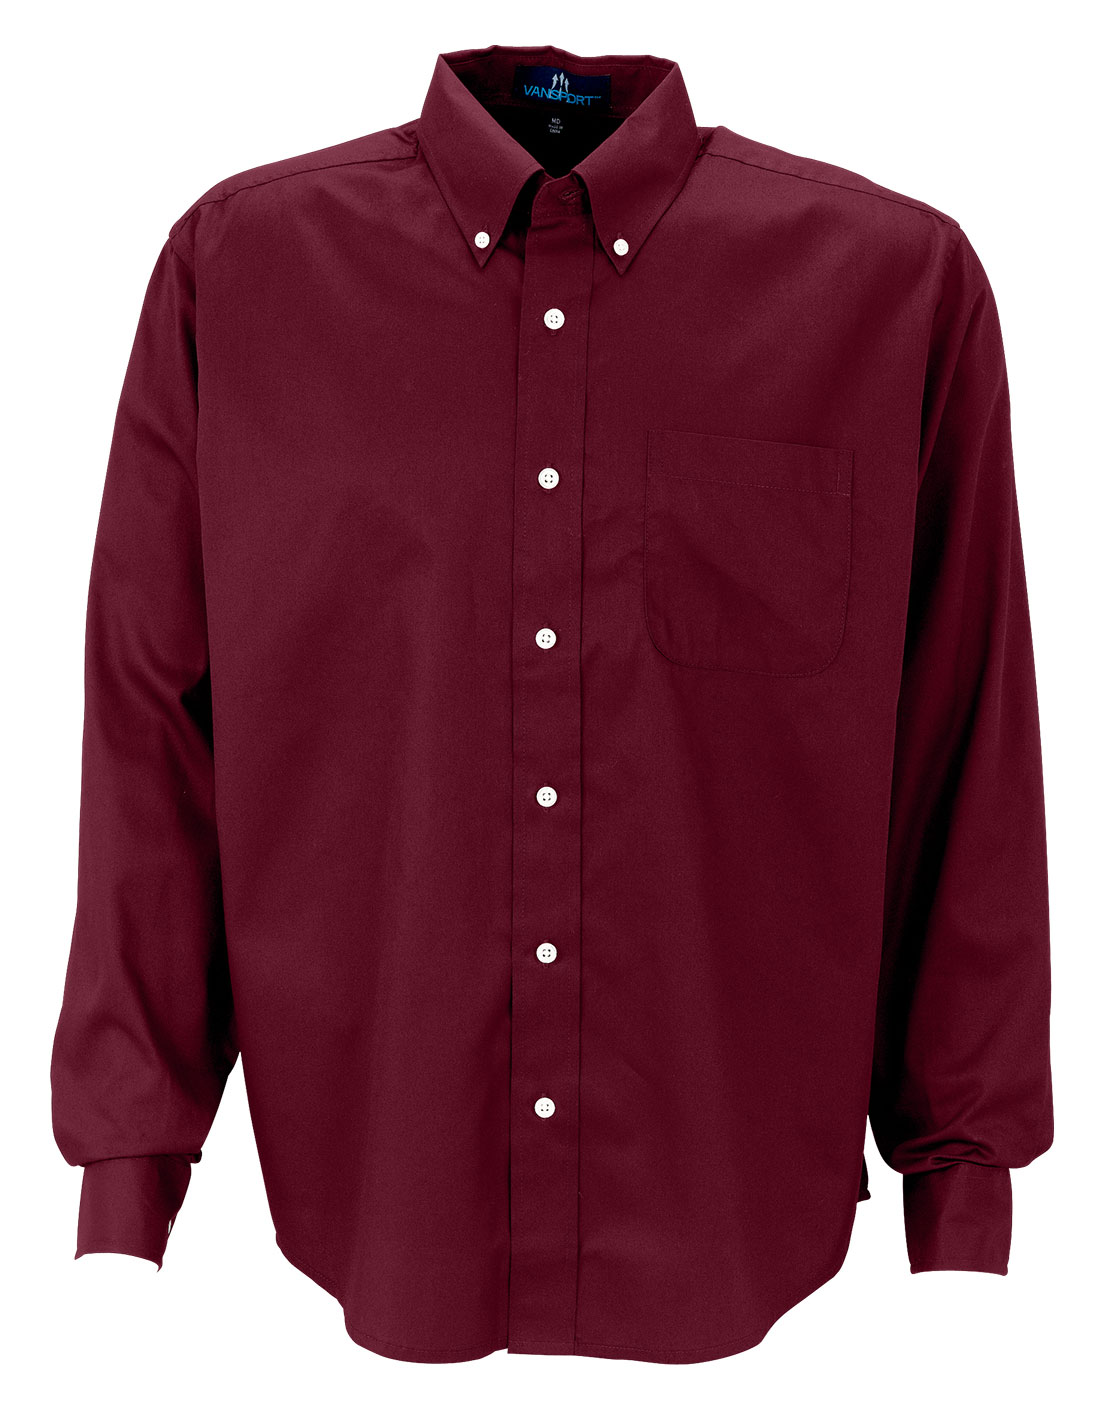 Wicked Woven® Mens Dress Shirt